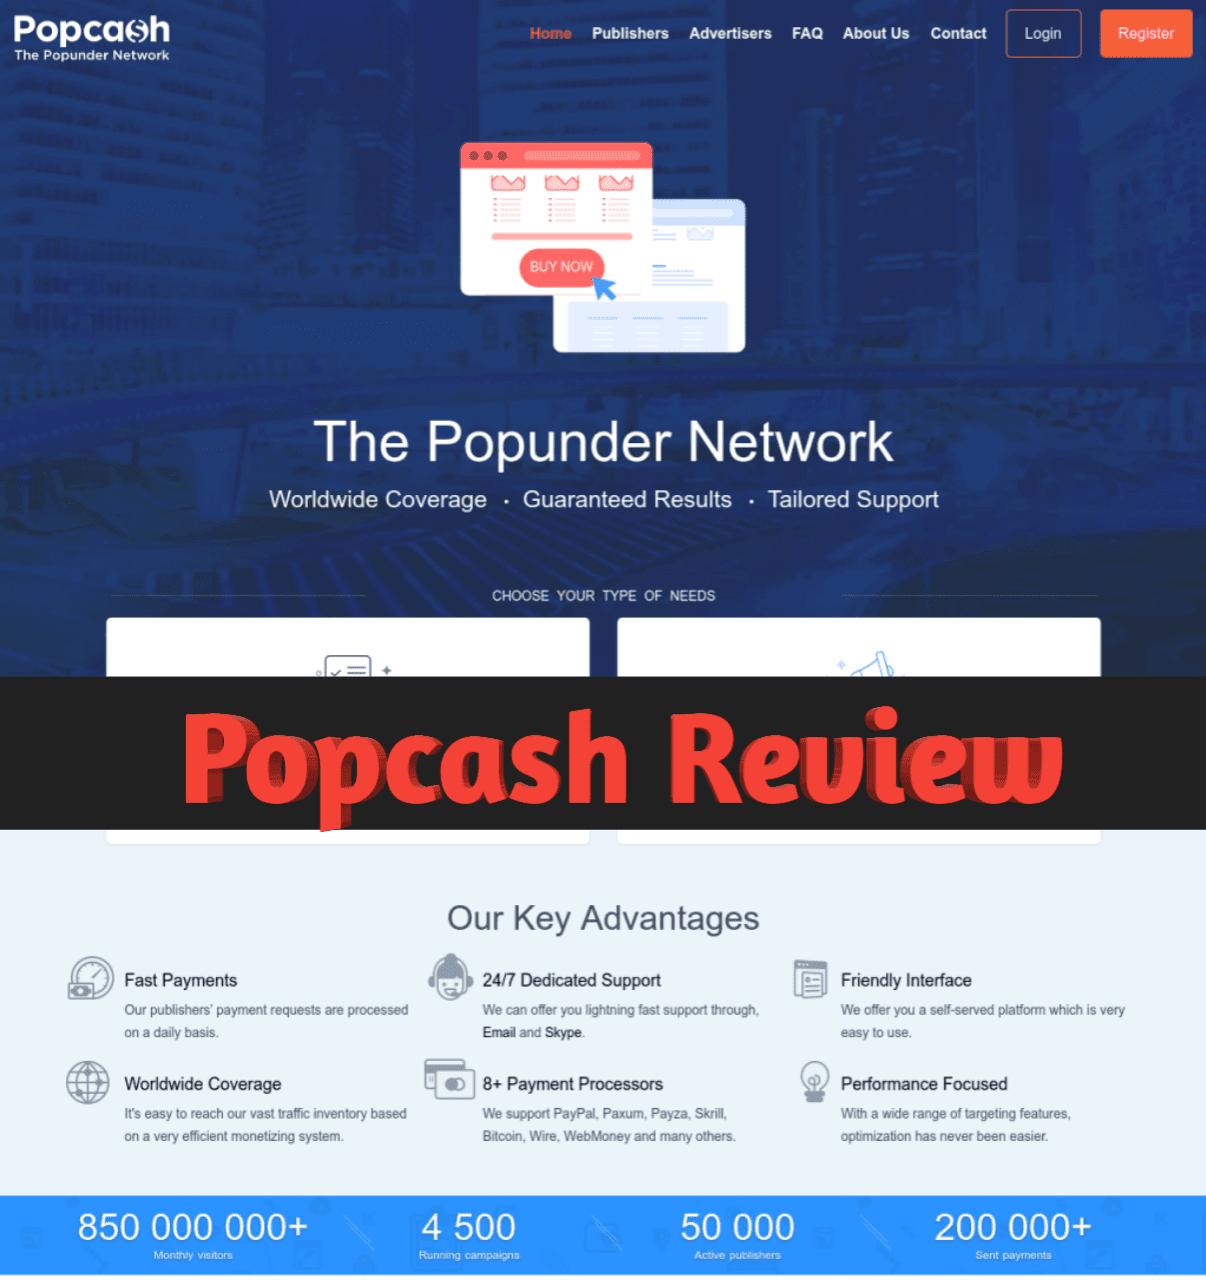 Popcash-review